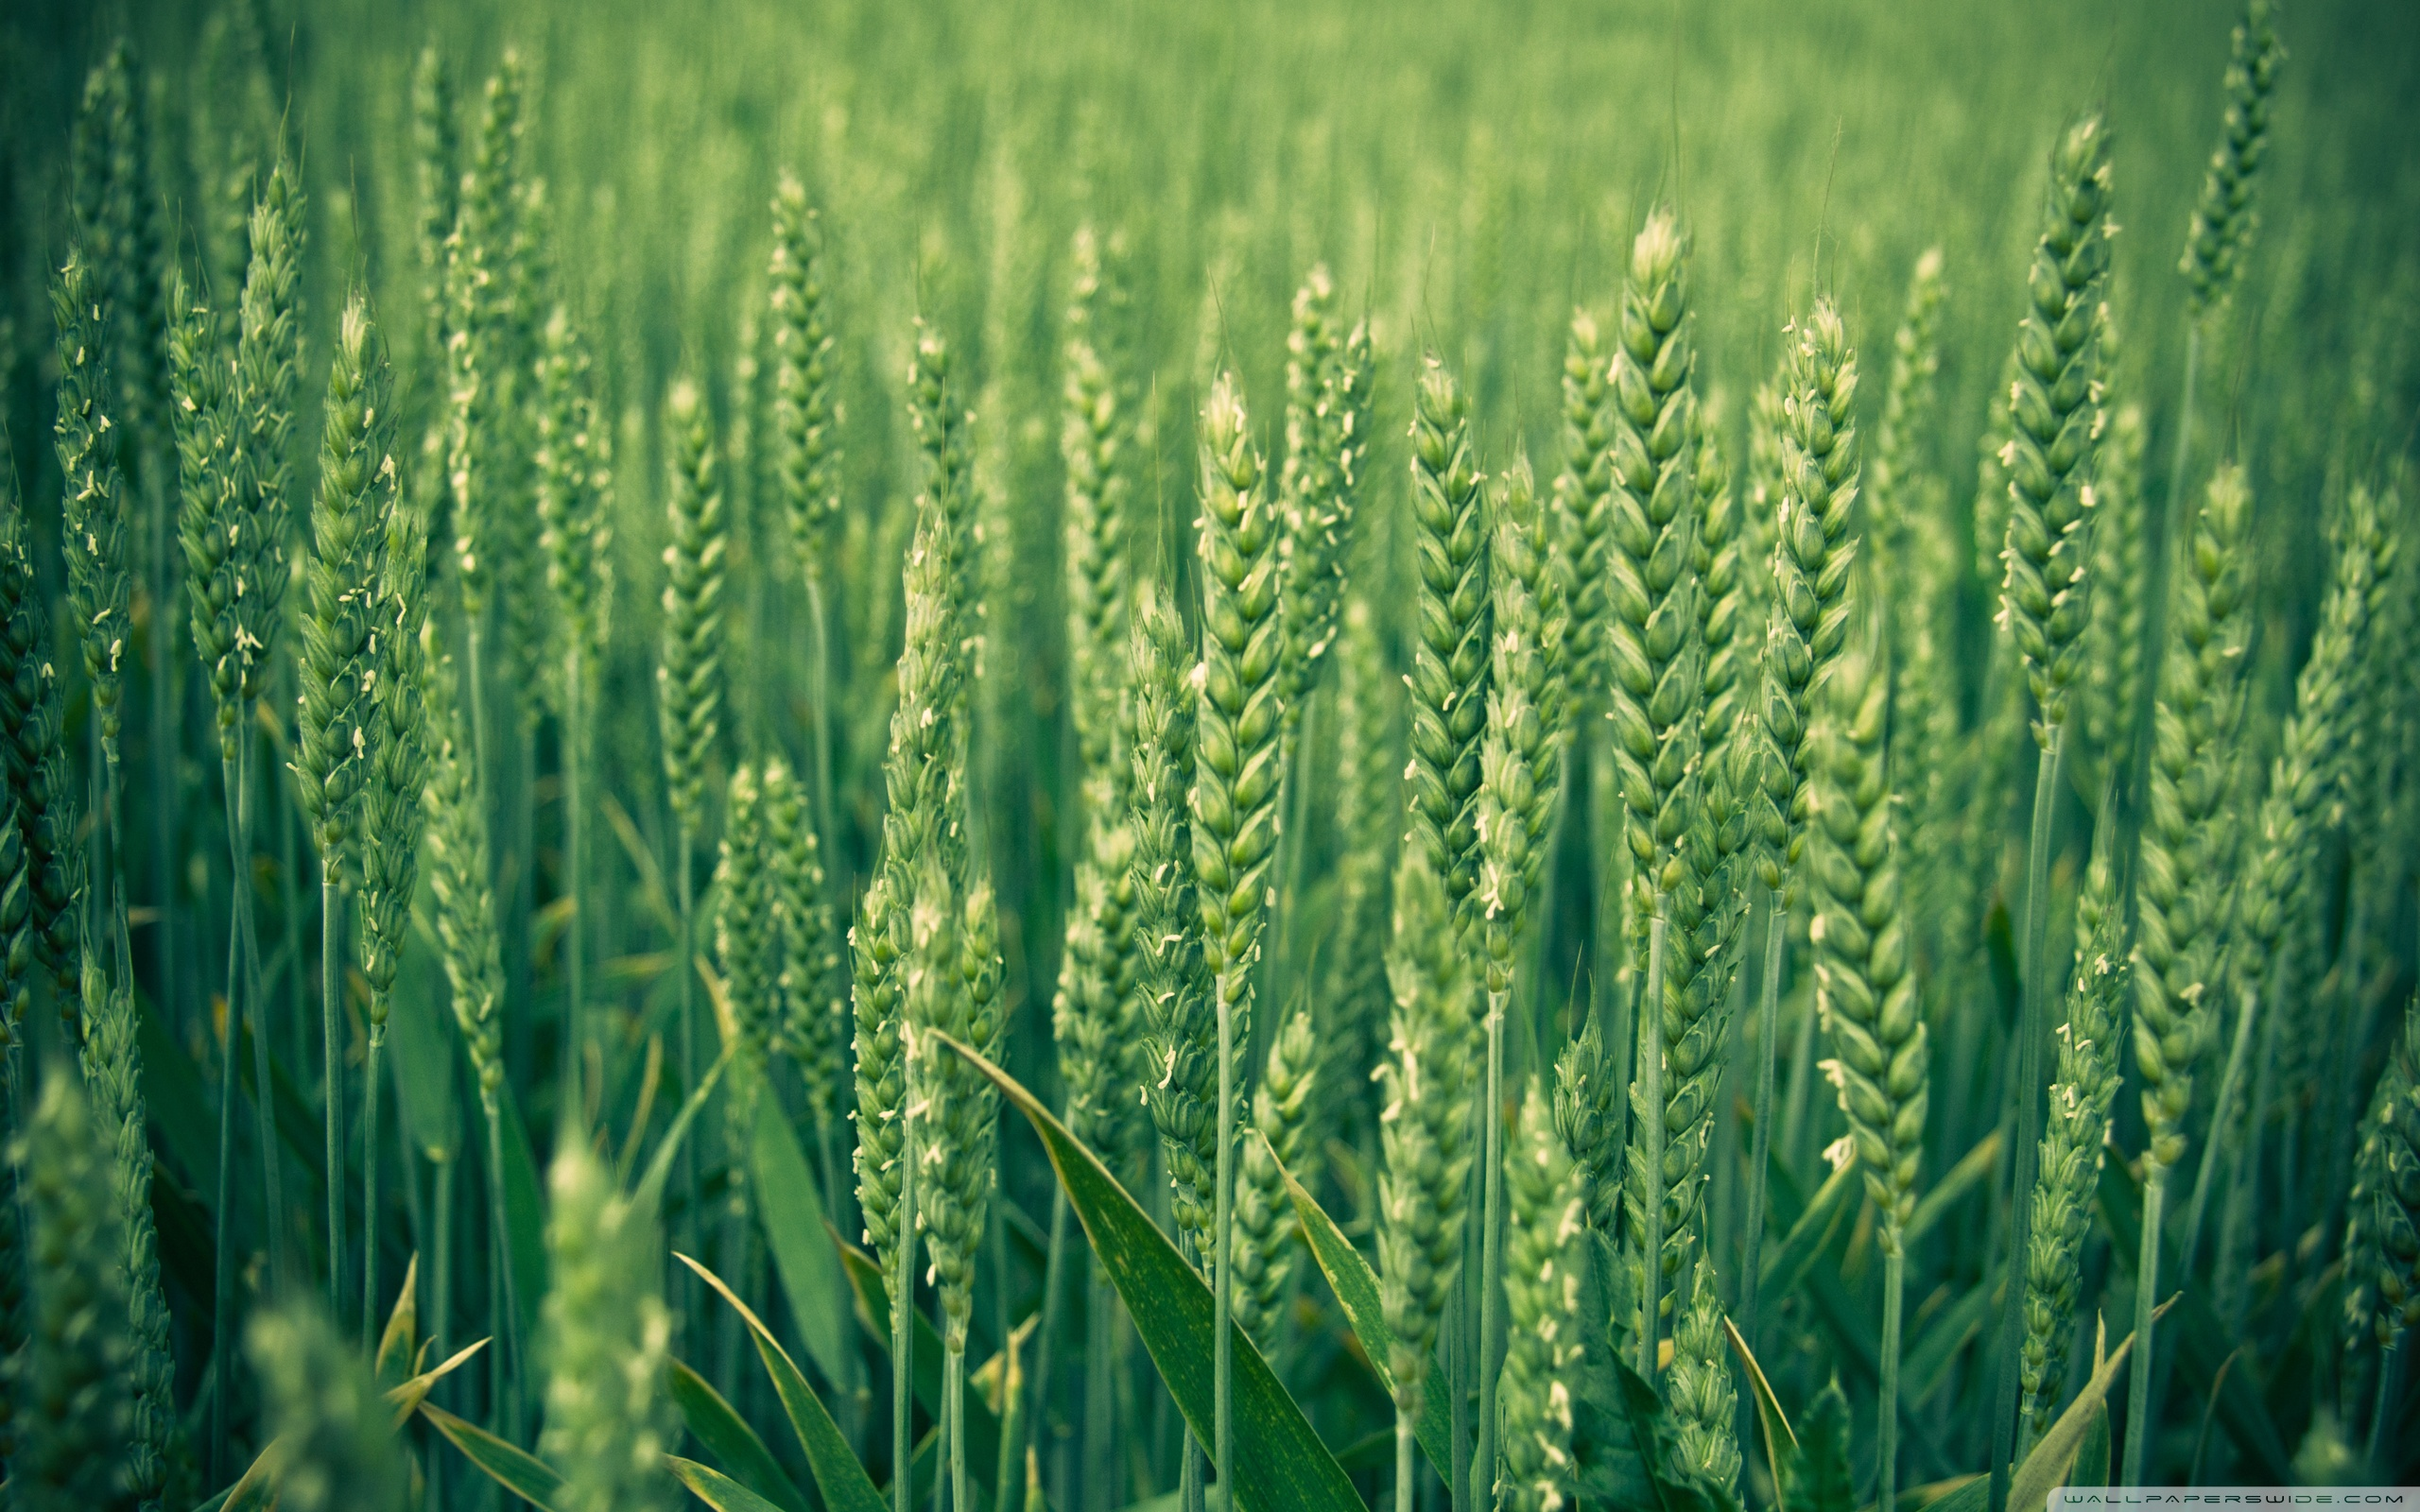 Green Wheat ❤ 4K HD Desktop Wallpaper for 4K Ultra HD TV • Tablet ...